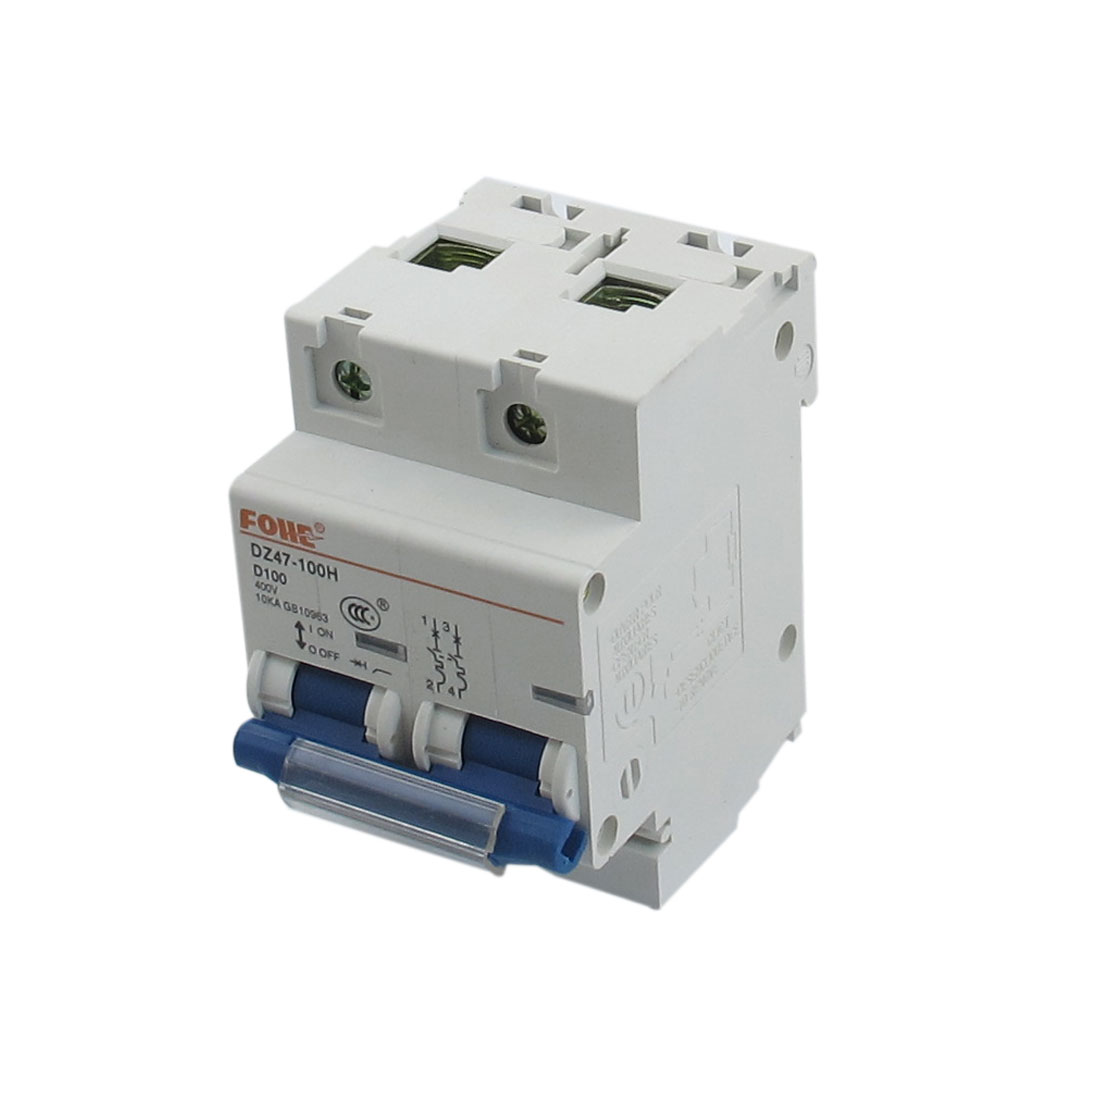 AC 400V 100A 2 Poles Overload Protection MCB Mini Circuit Breaker